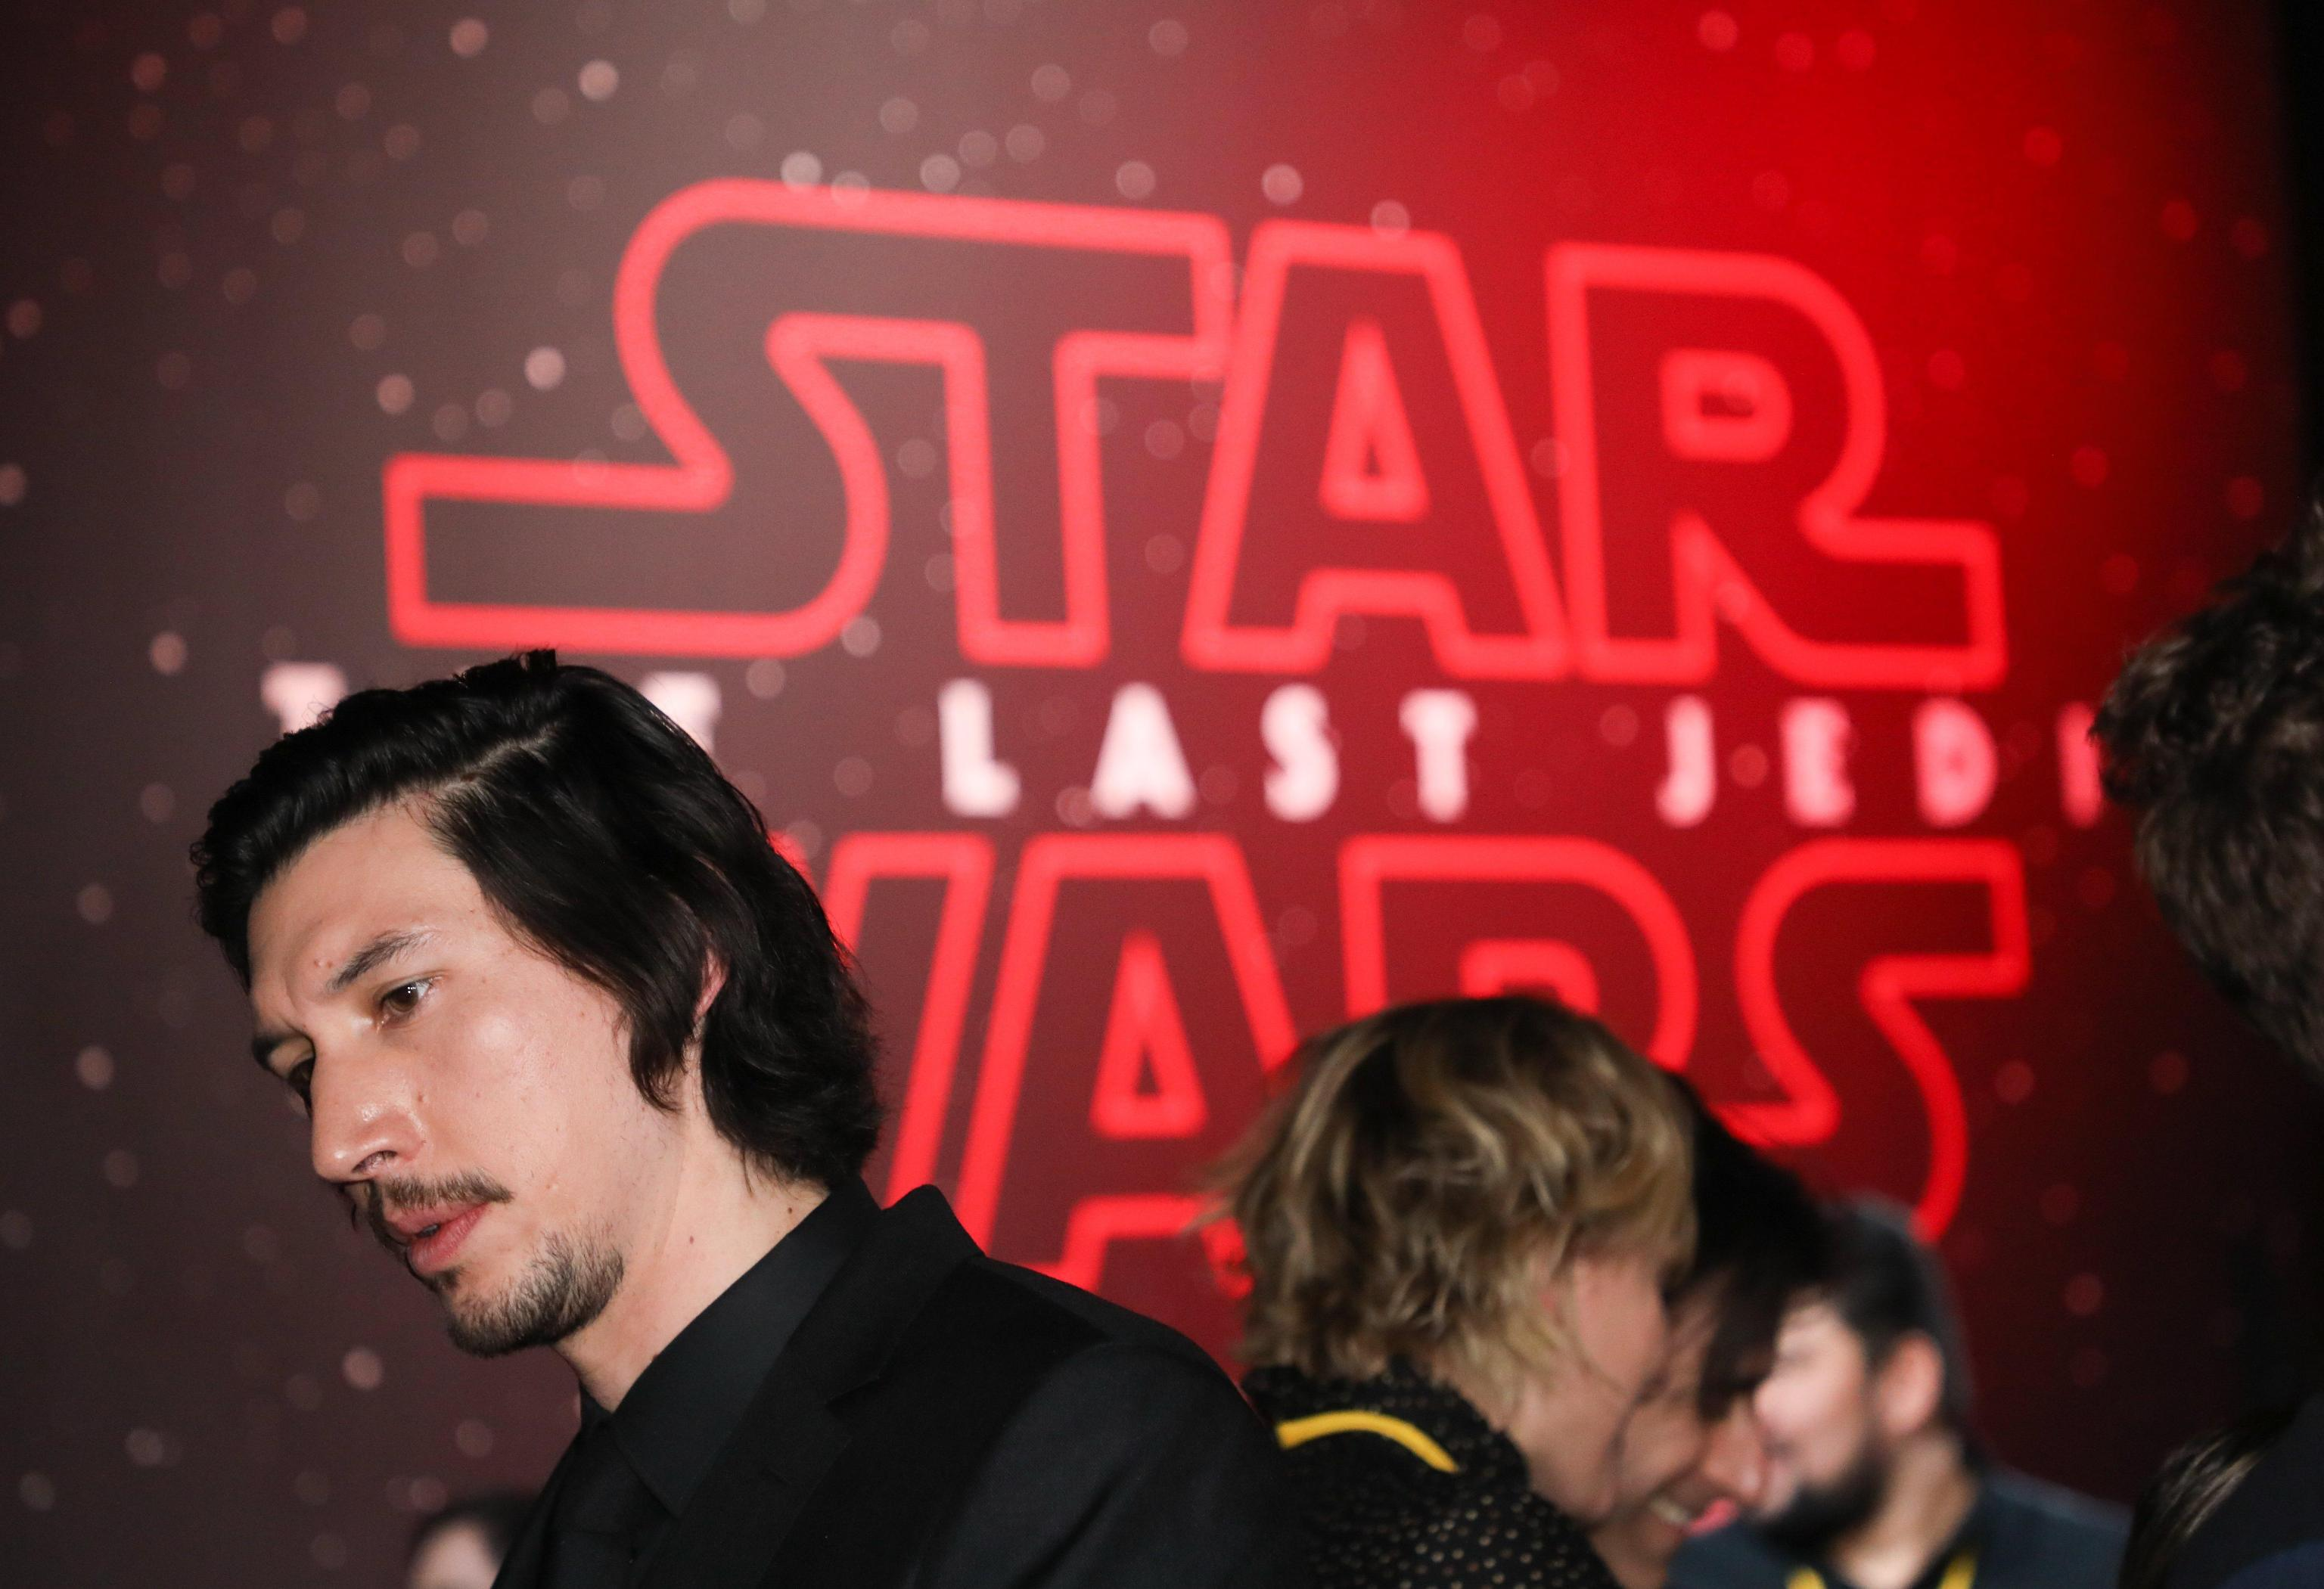 Star Wars: The Last Jedi world premiere red carpet in Los Angeles